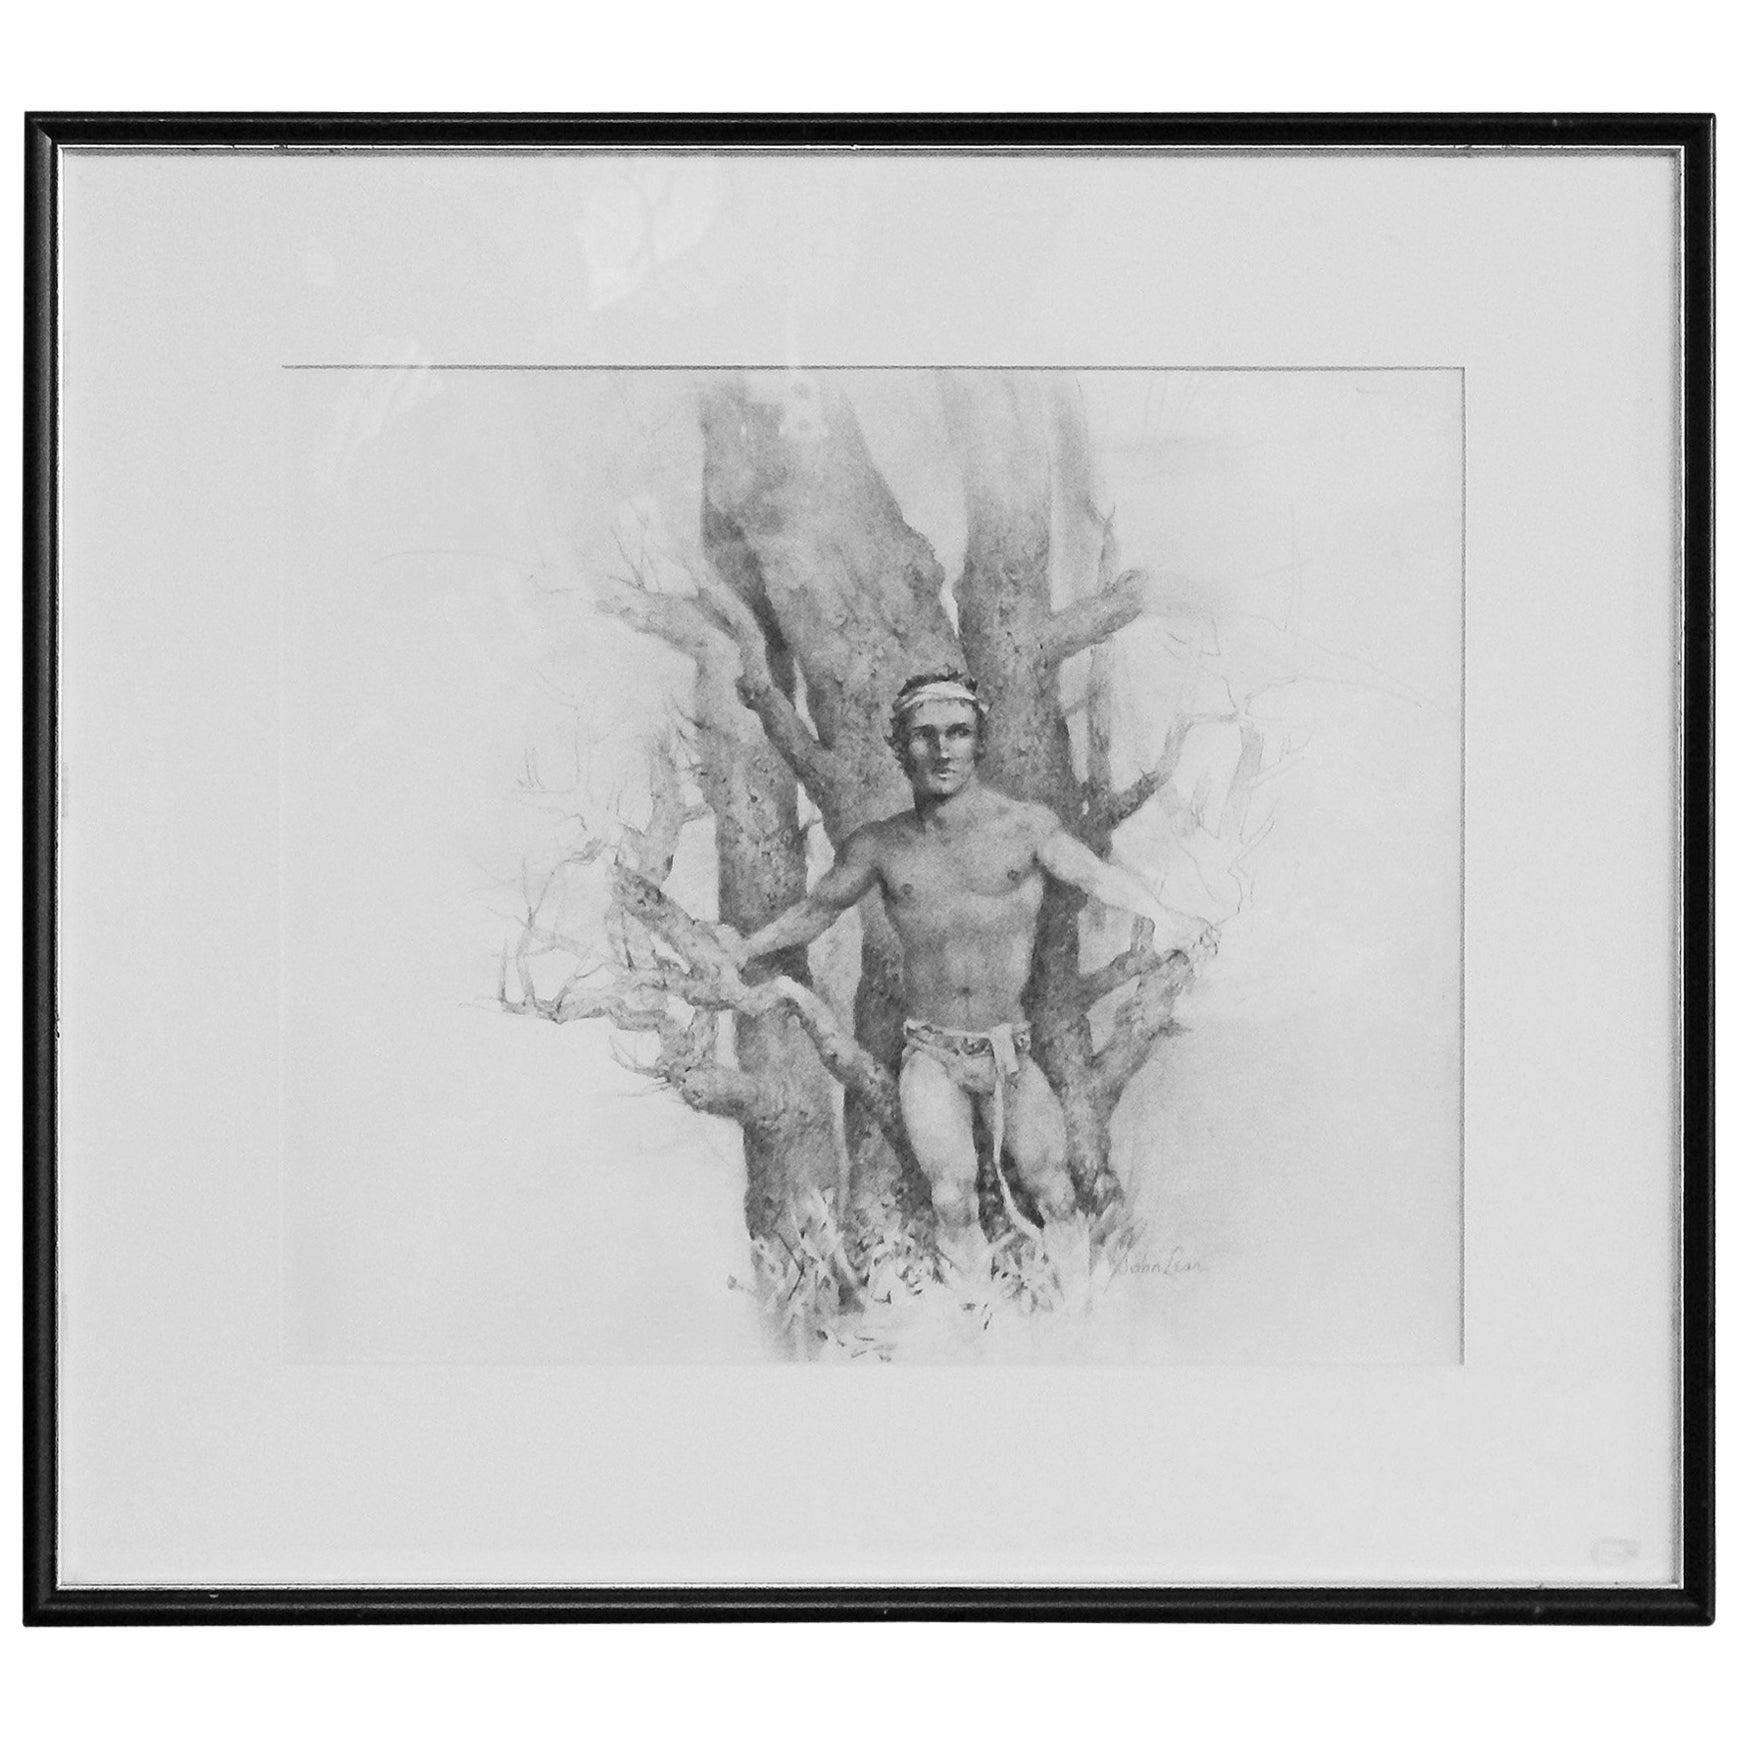 Semi nude man with beech tree pencil drawing by john lear for sale at 1stdibs